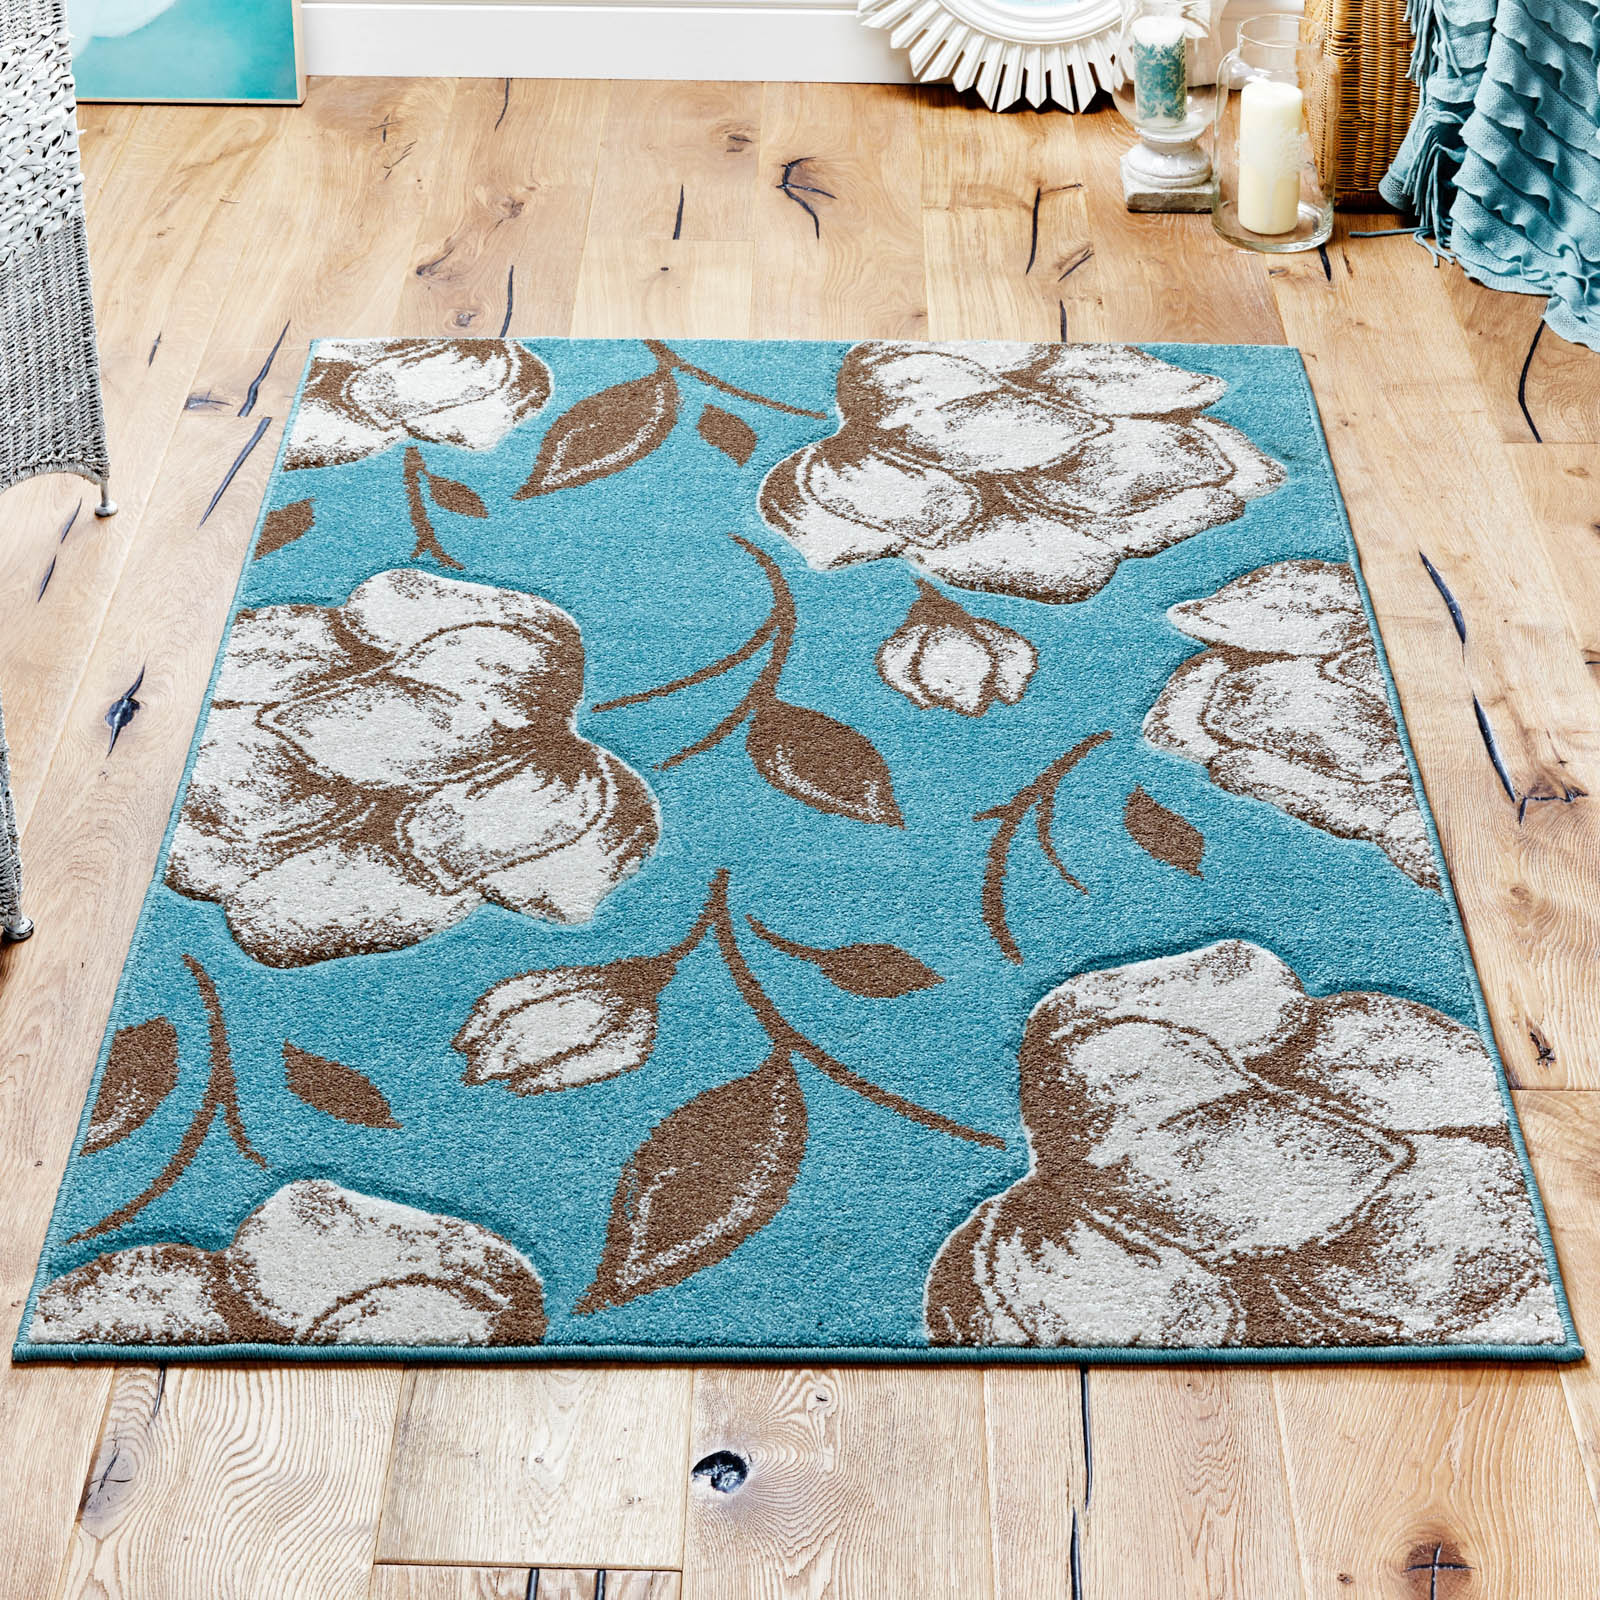 Viva Rugs 5996 L in Blue and Beige